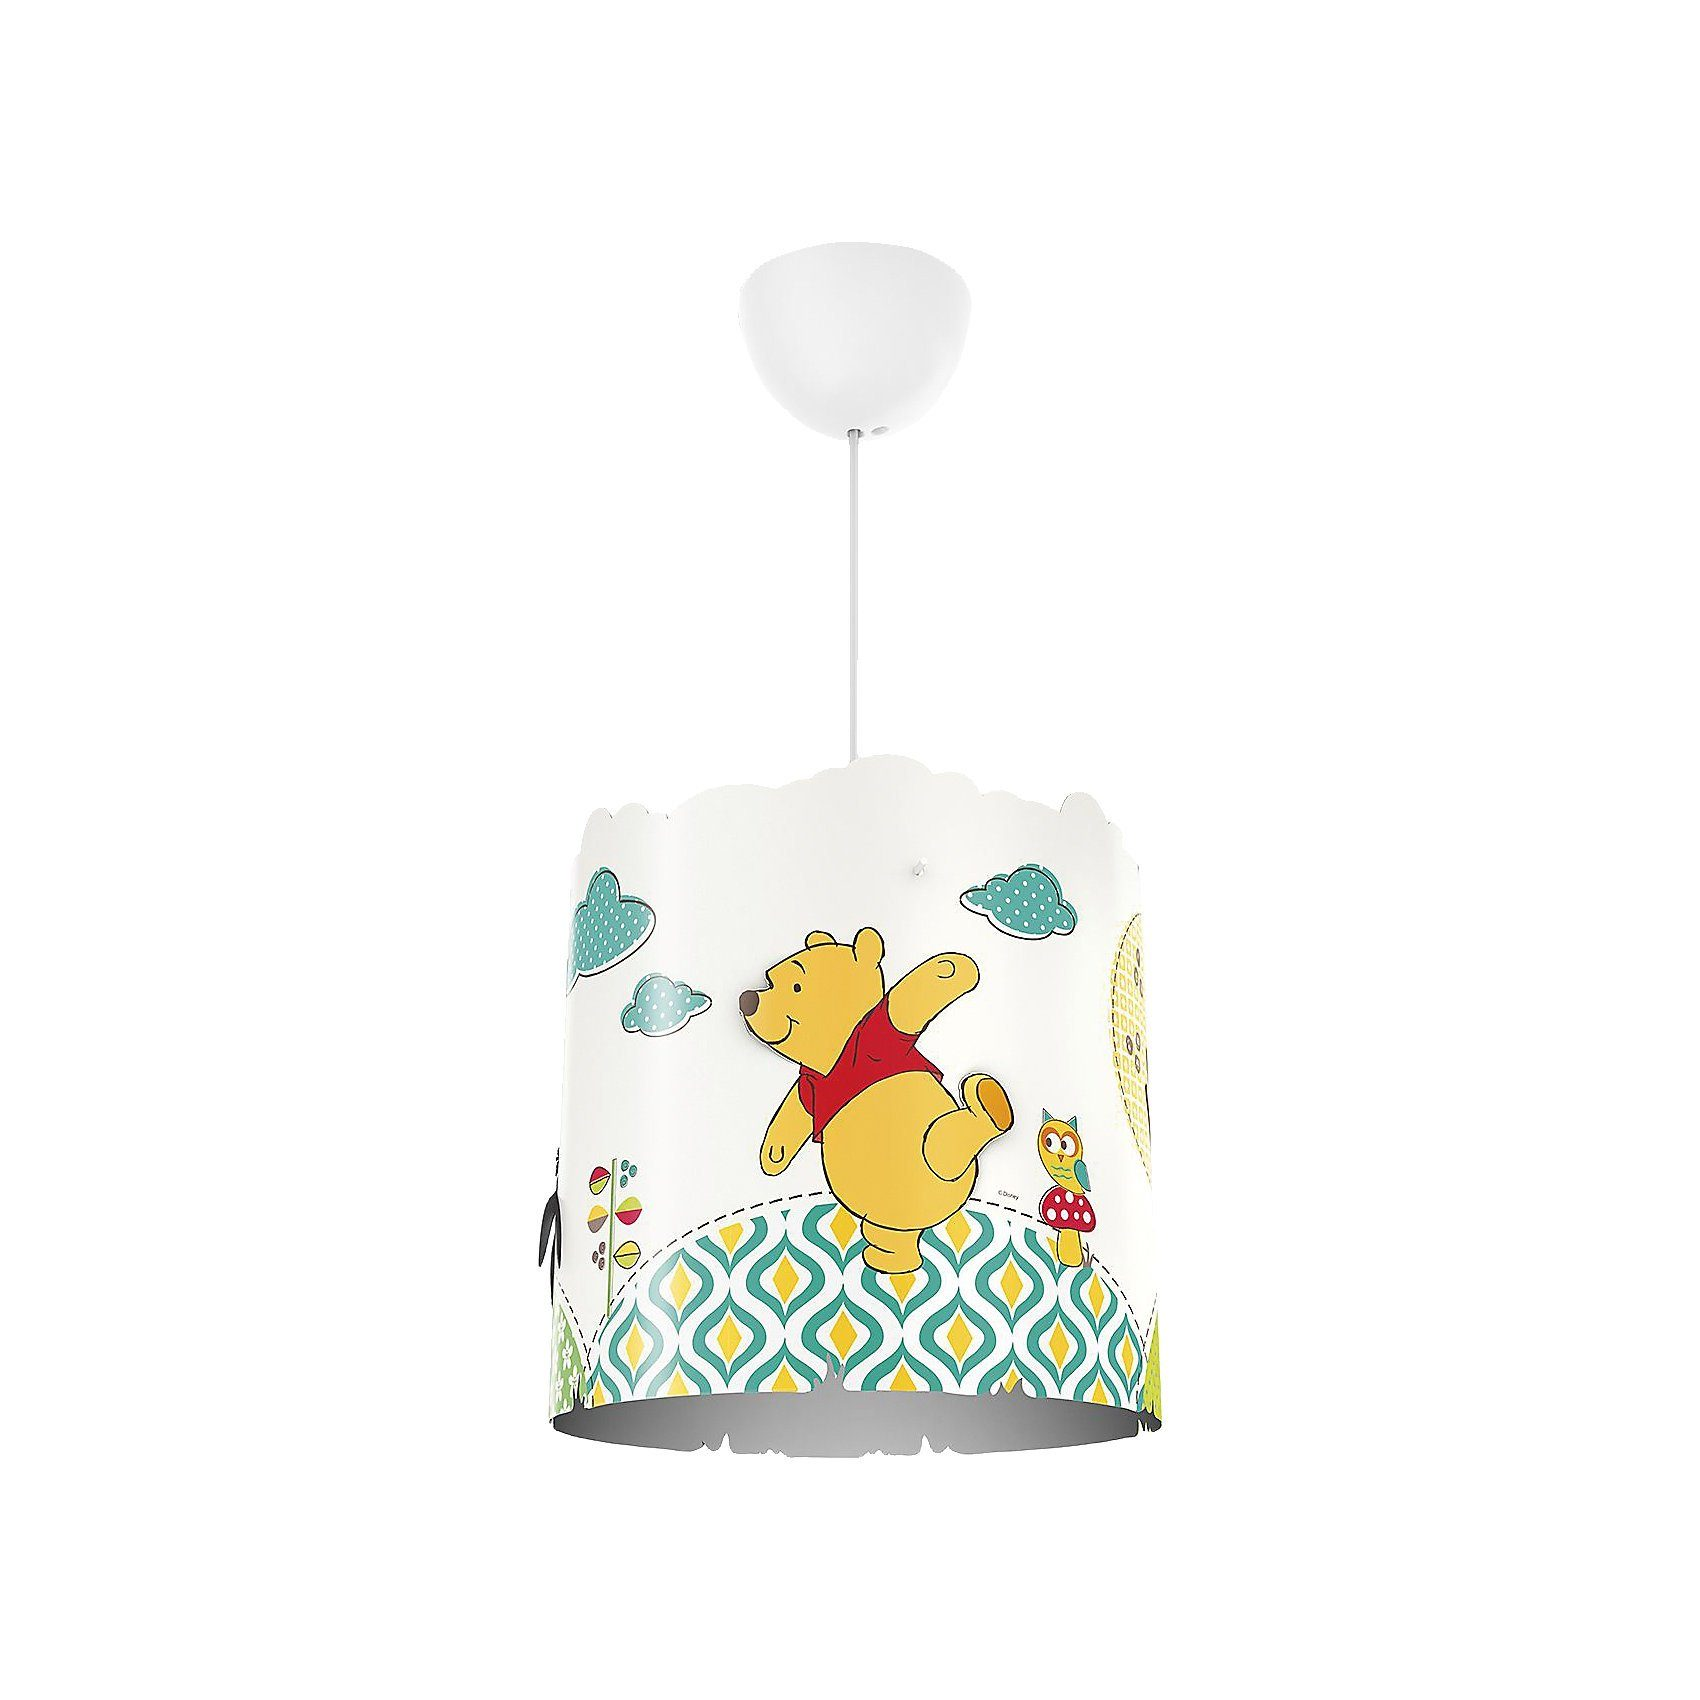 Philips Lighting Hängelampe, Winnie the Pooh